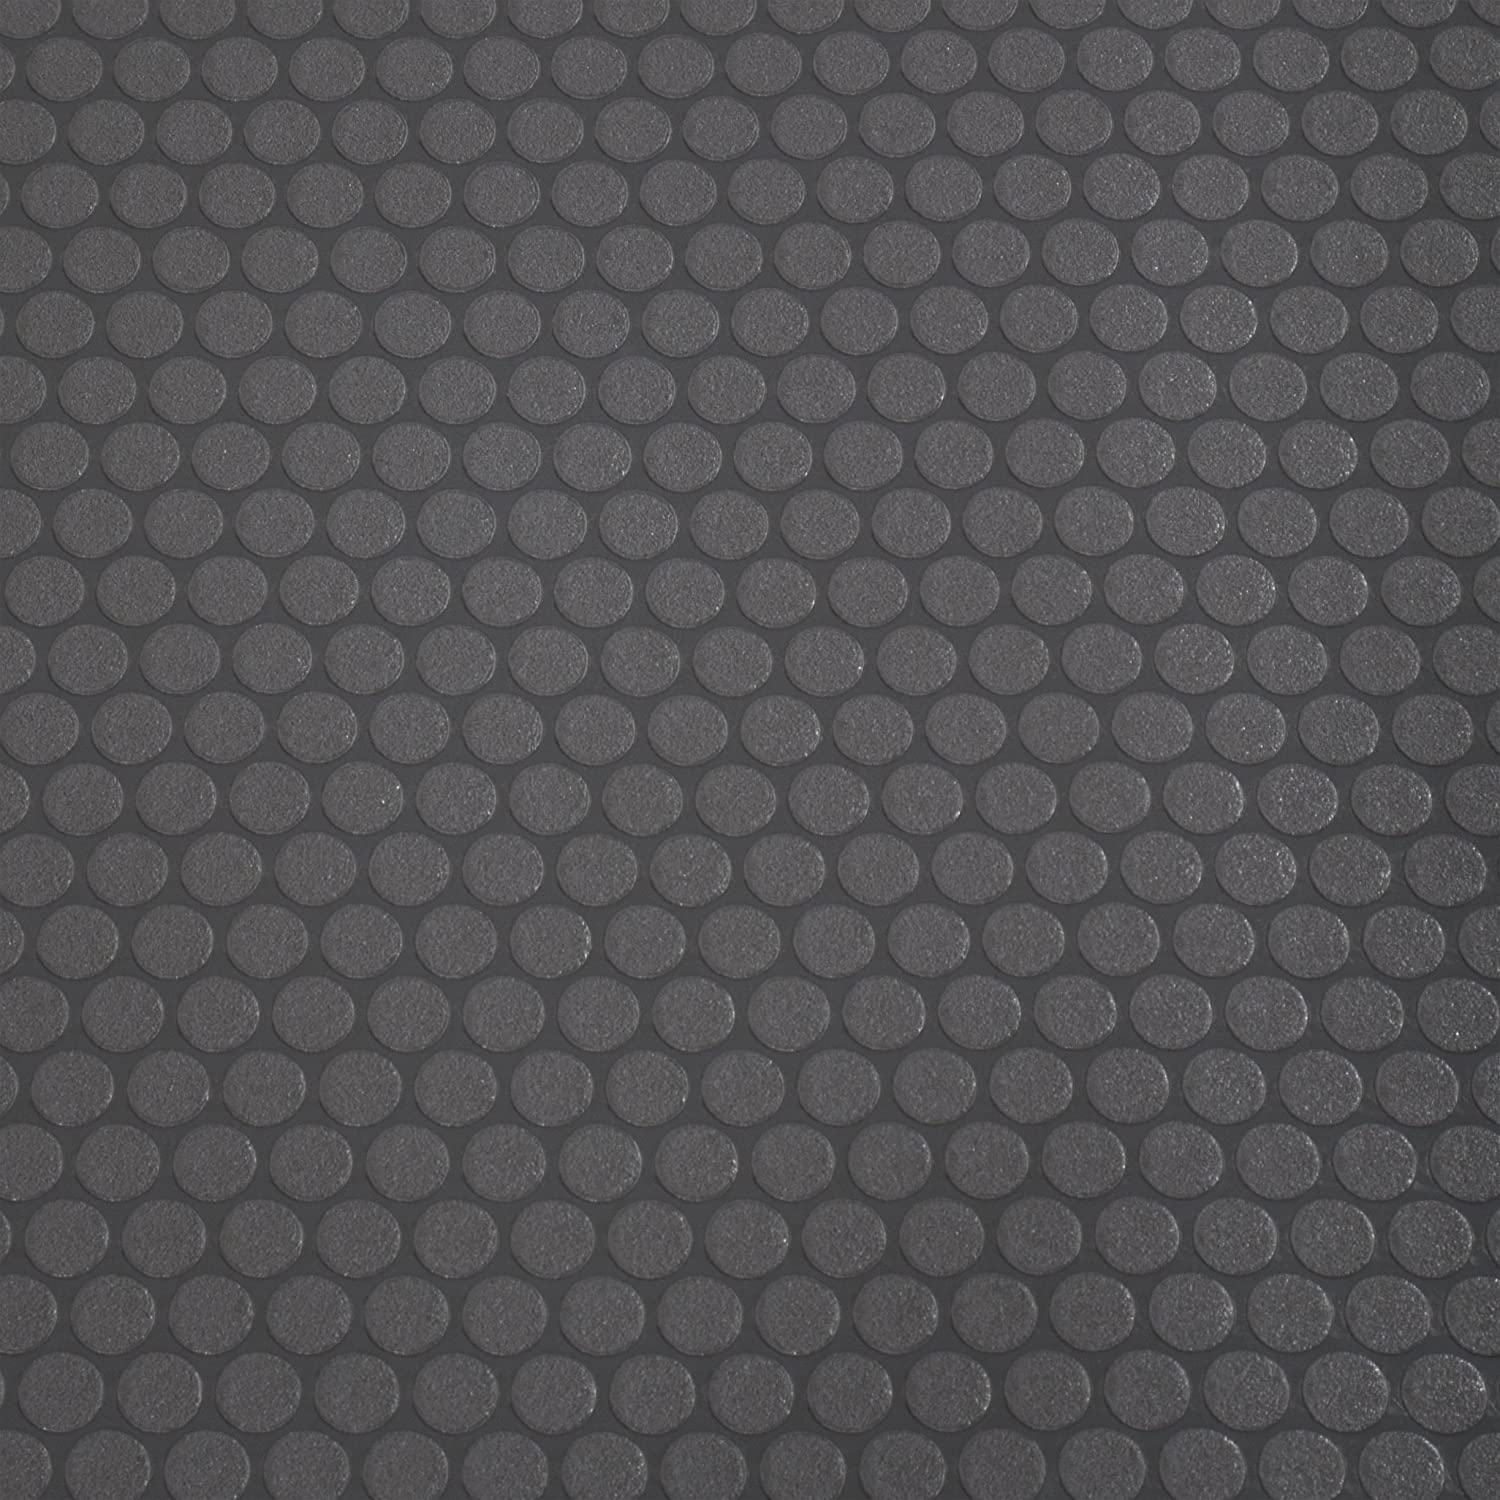 8' 2' Wide Nickel Pattern RV Flooring Gray - By The Foot RecPro